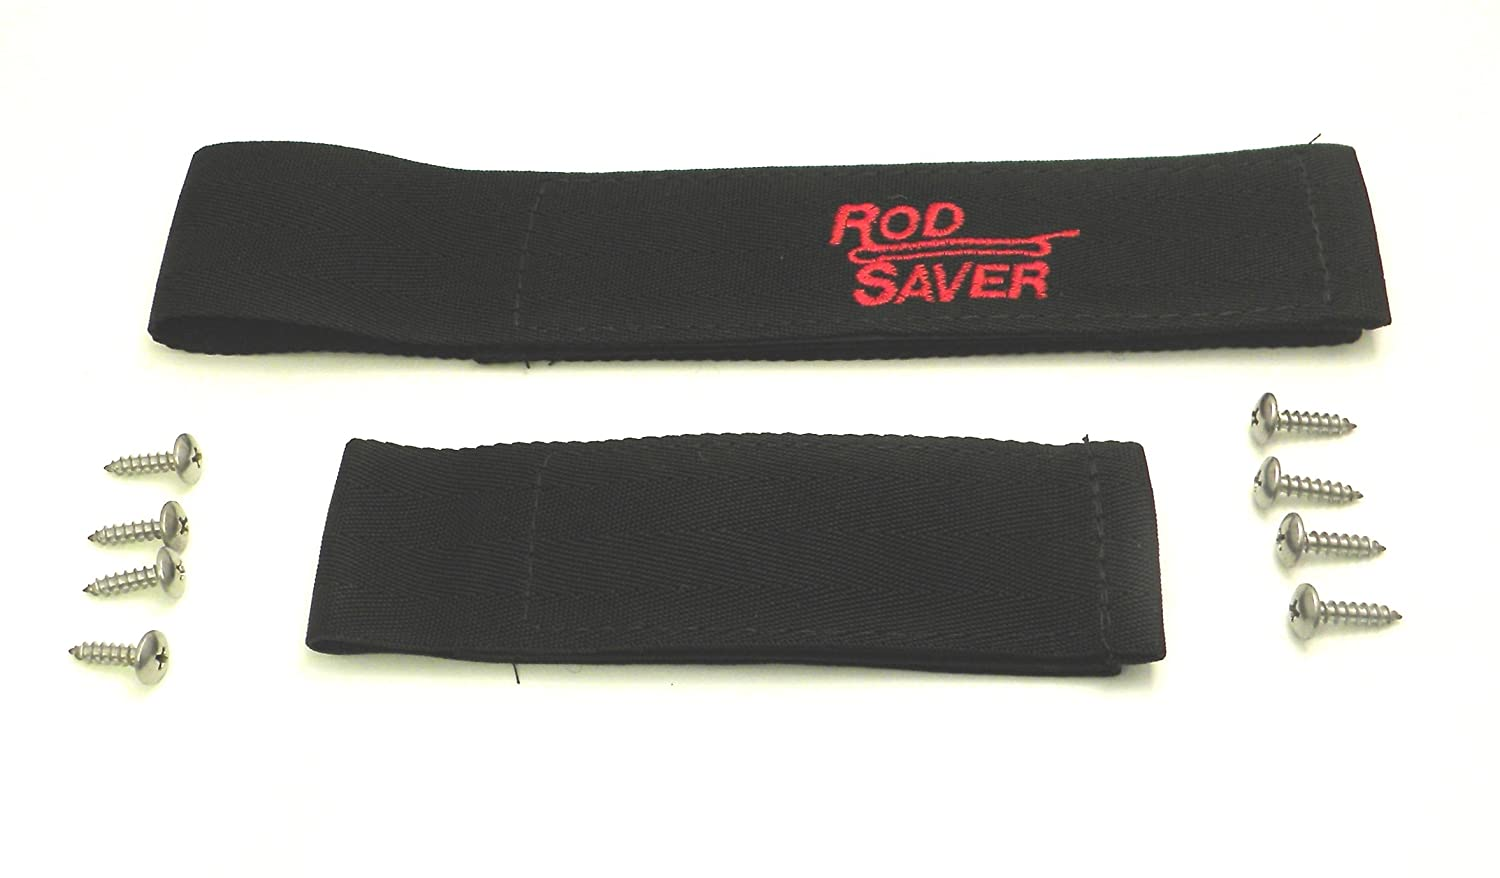 Black Finish EB-5500255 Rod Saver 10//6RS Original Marine Rod Saver Set with 10-Inch and 6-Inch Straps 2-Pieces